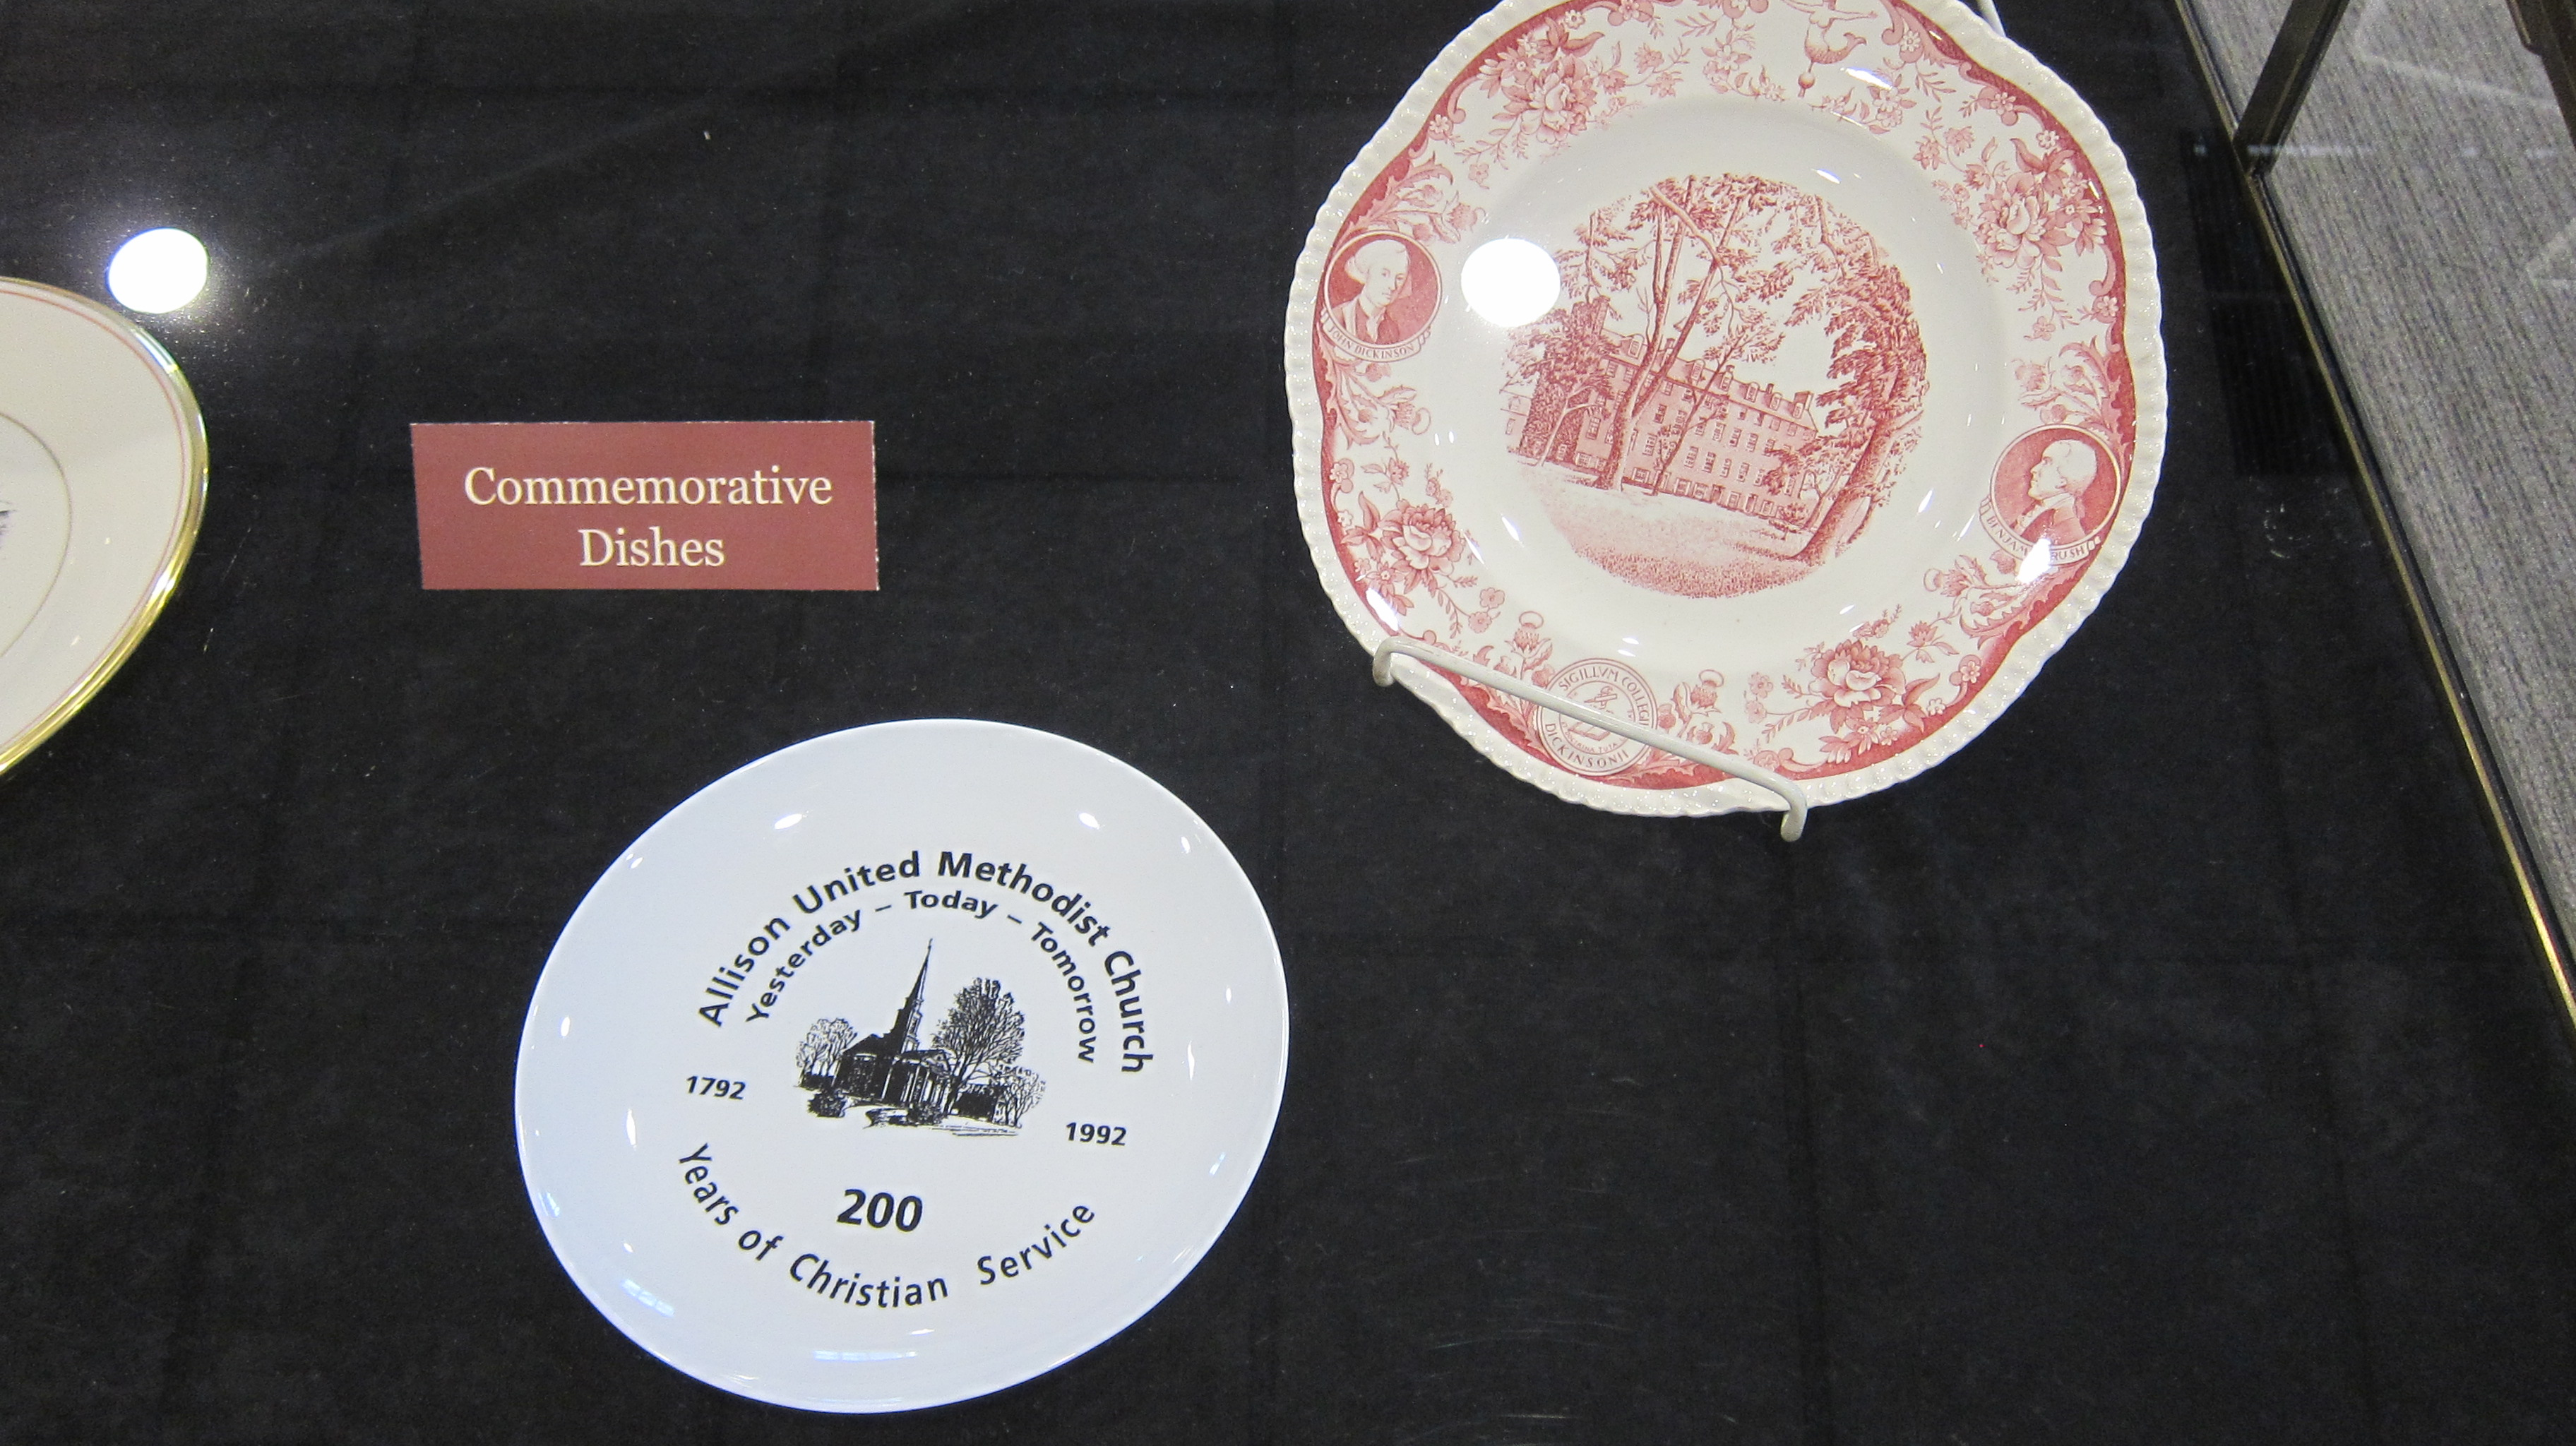 Commemorative Plates from Dickinson College